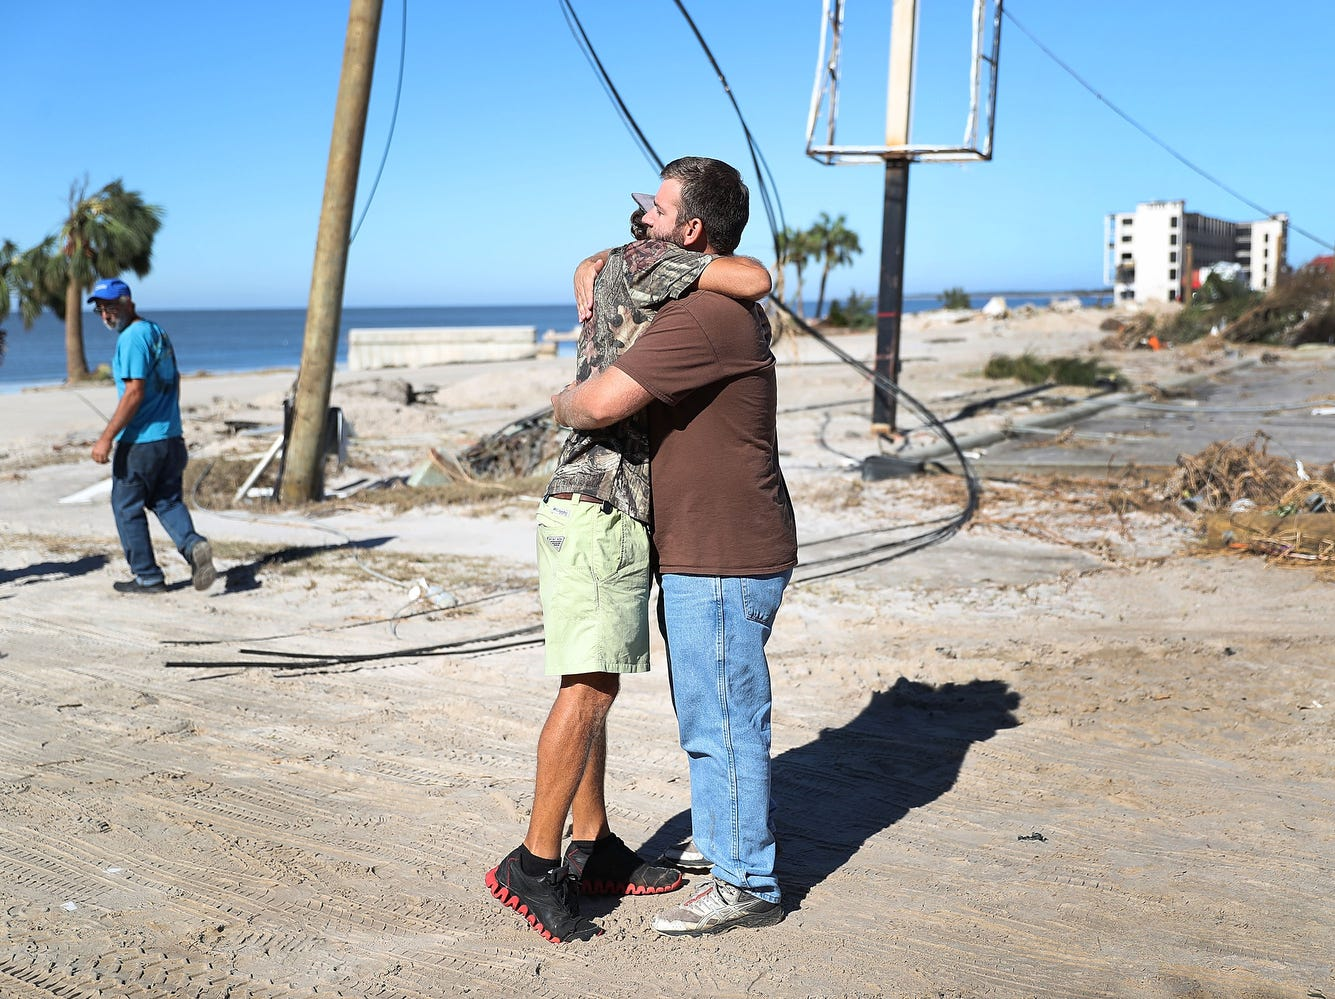 Kevin Guaranta hugs Henry Kirby after they see each other is okay for the first time since Hurricane Michael passed through the area on Oct. 12, 2018, in Mexico Beach, Fla.